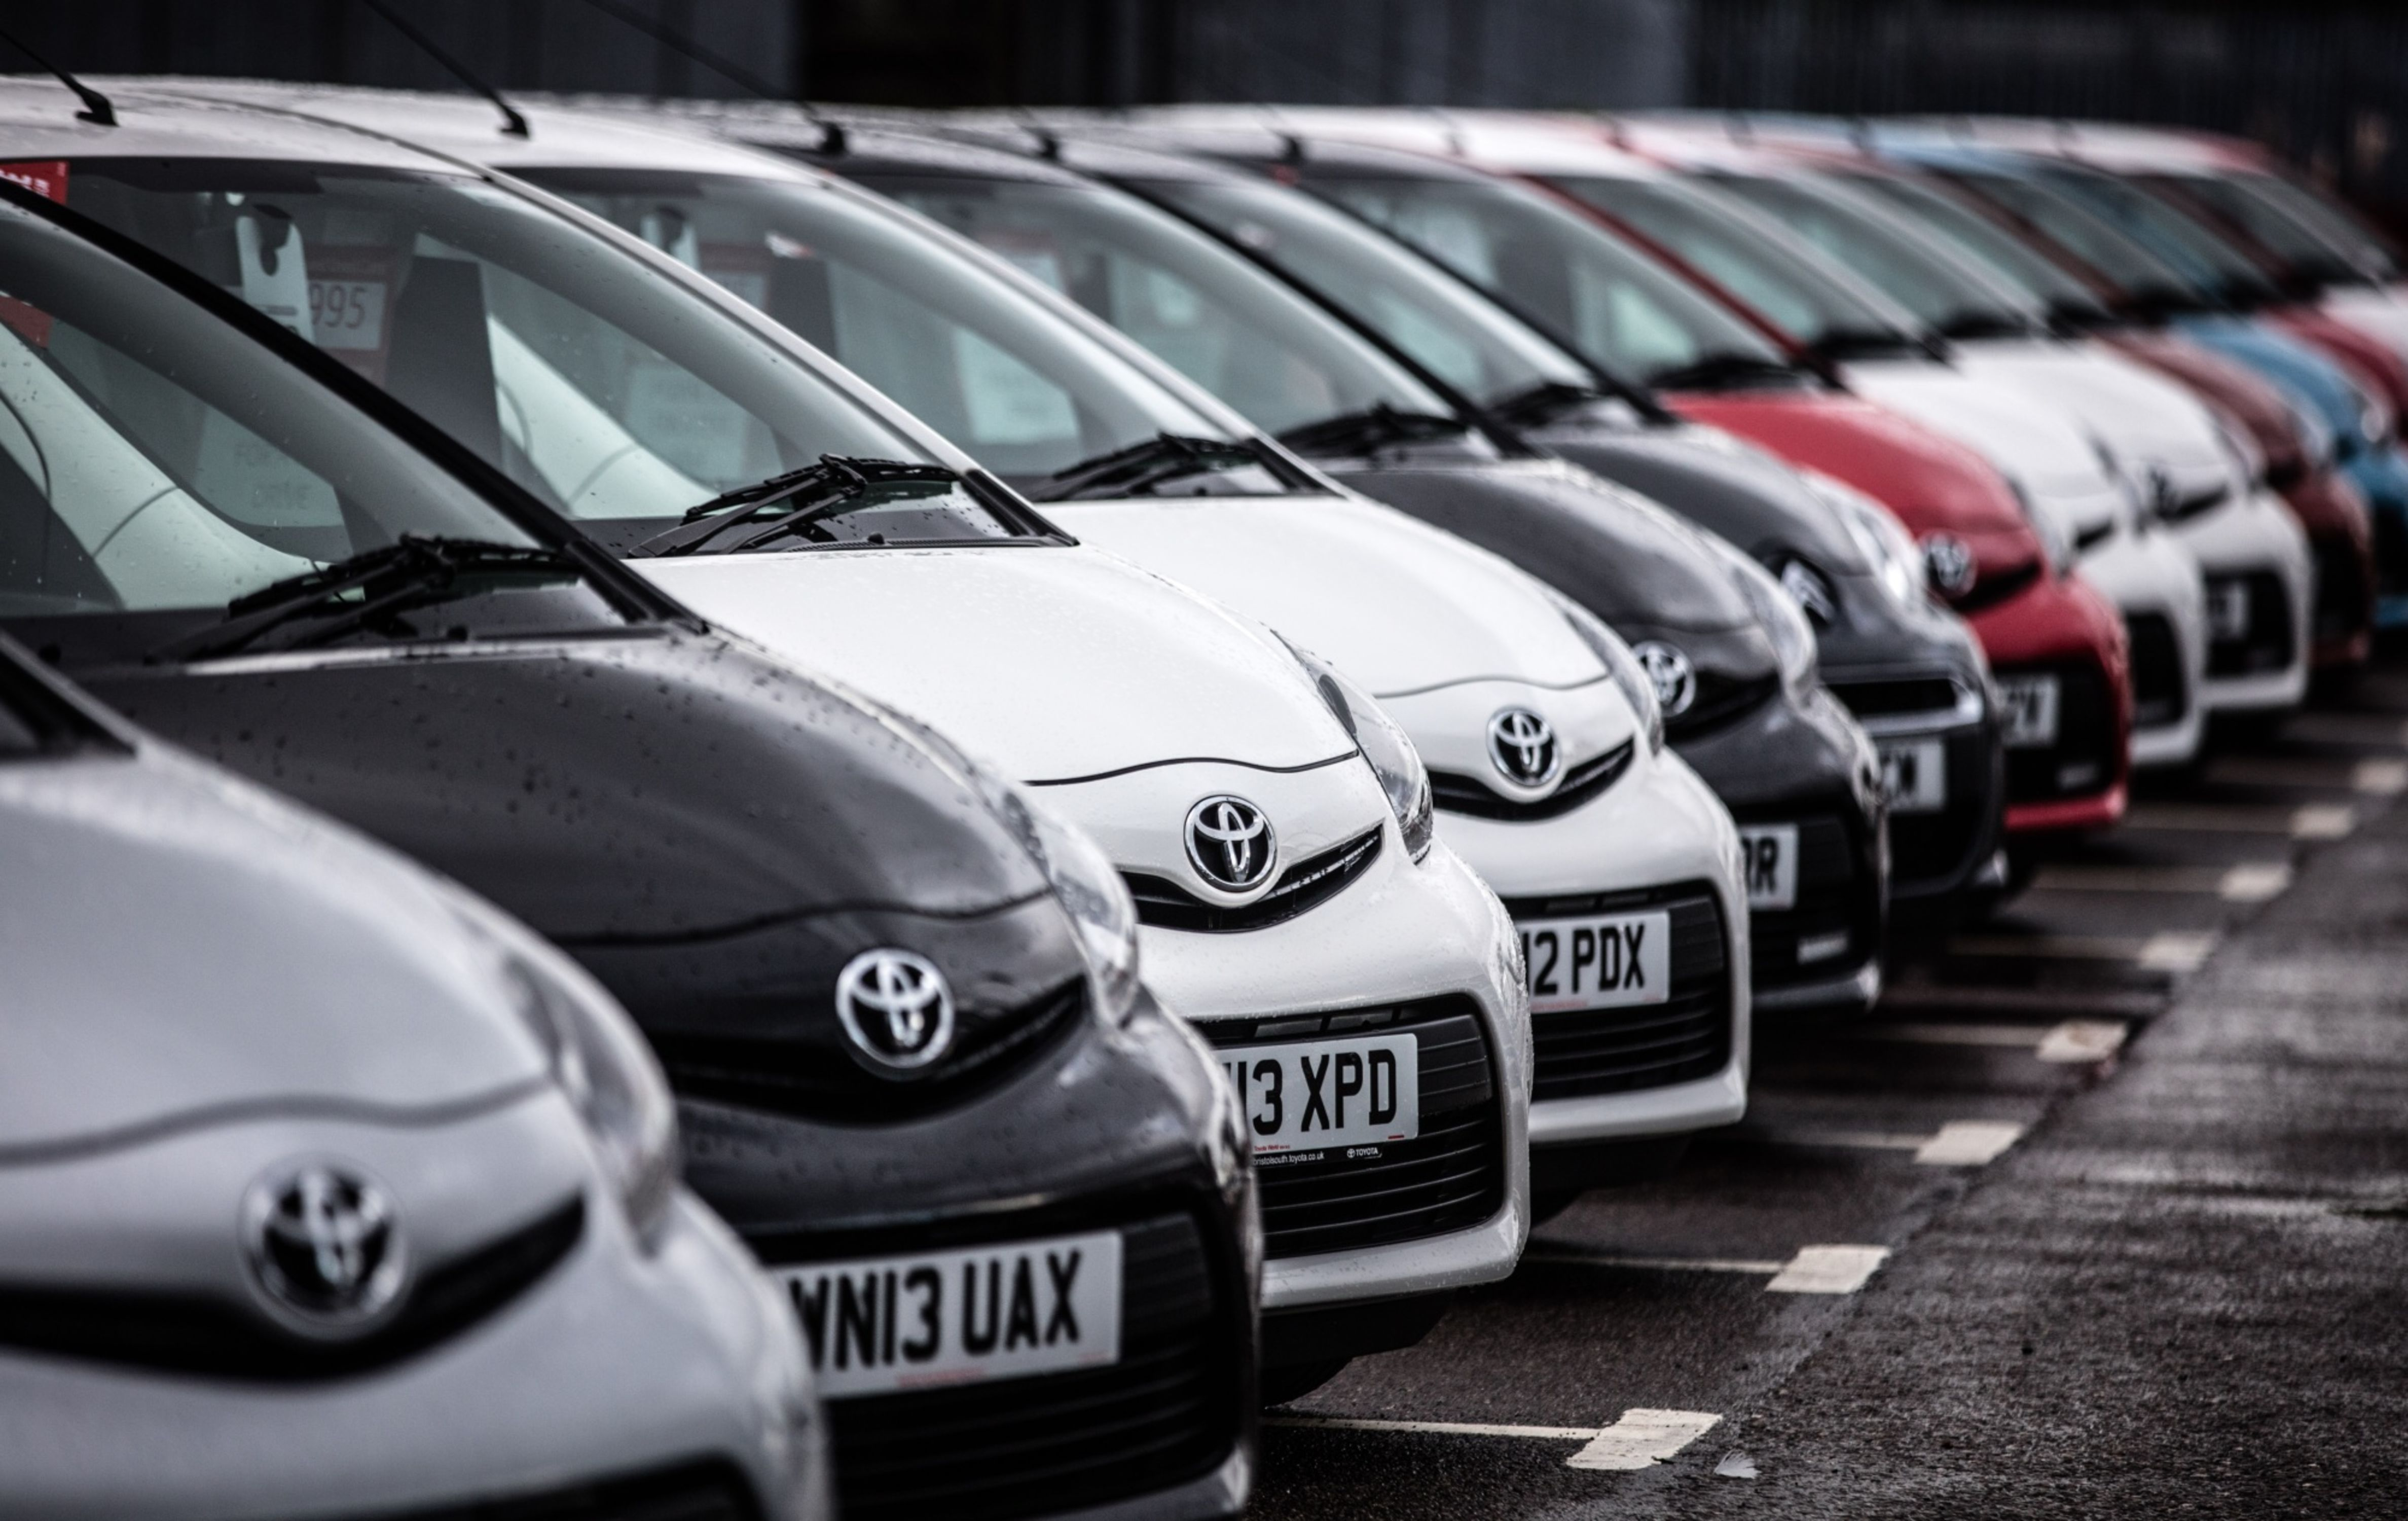 A line of Toyota cars are offered for sale on the forecourt of a main motor car dealer in Brislington on October 6, 2015 in Bristol, England.